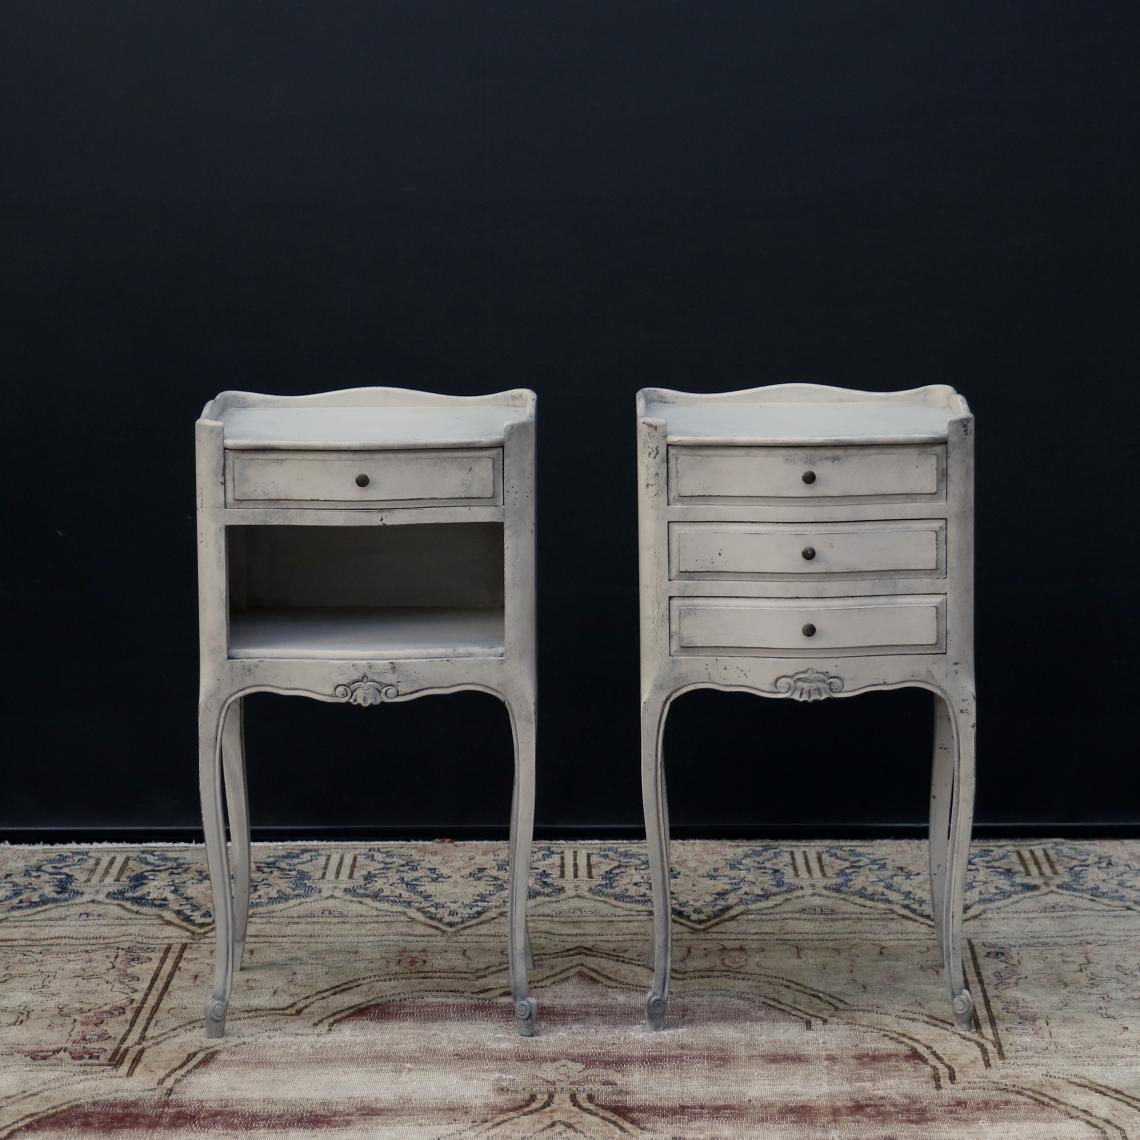 111-17 - Pair of Louis XV-style Bedside Tables